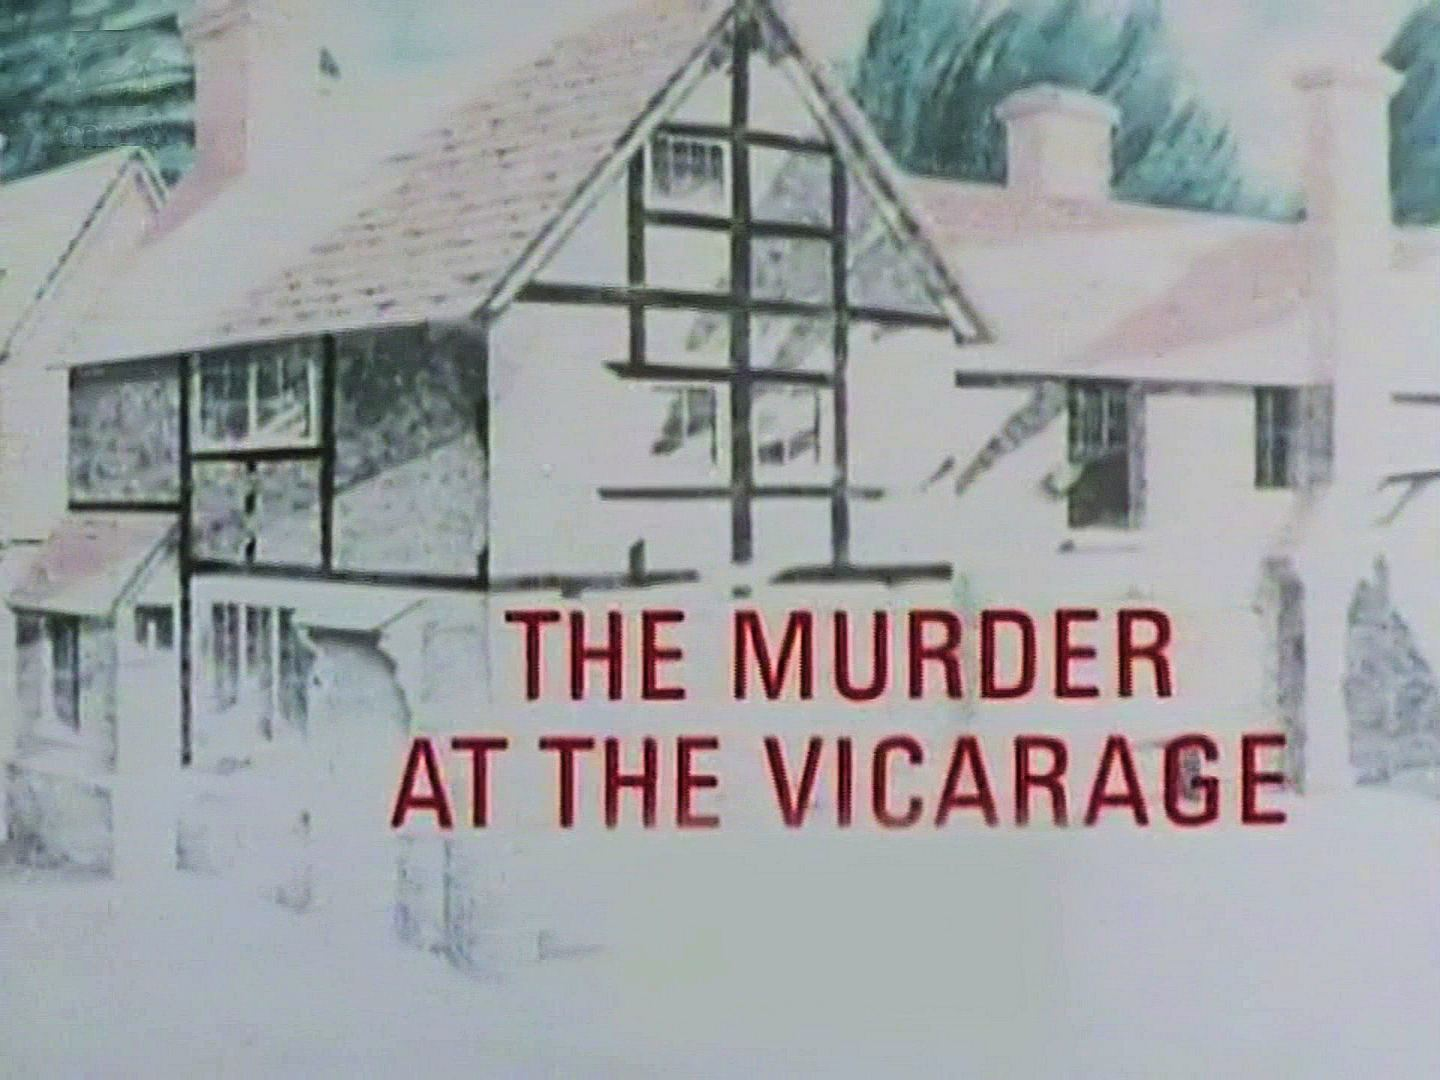 Main title from the 1986 'The Murder at the Vicarage' episode of Agatha Christie's Miss Marple (1984-1992) (1)